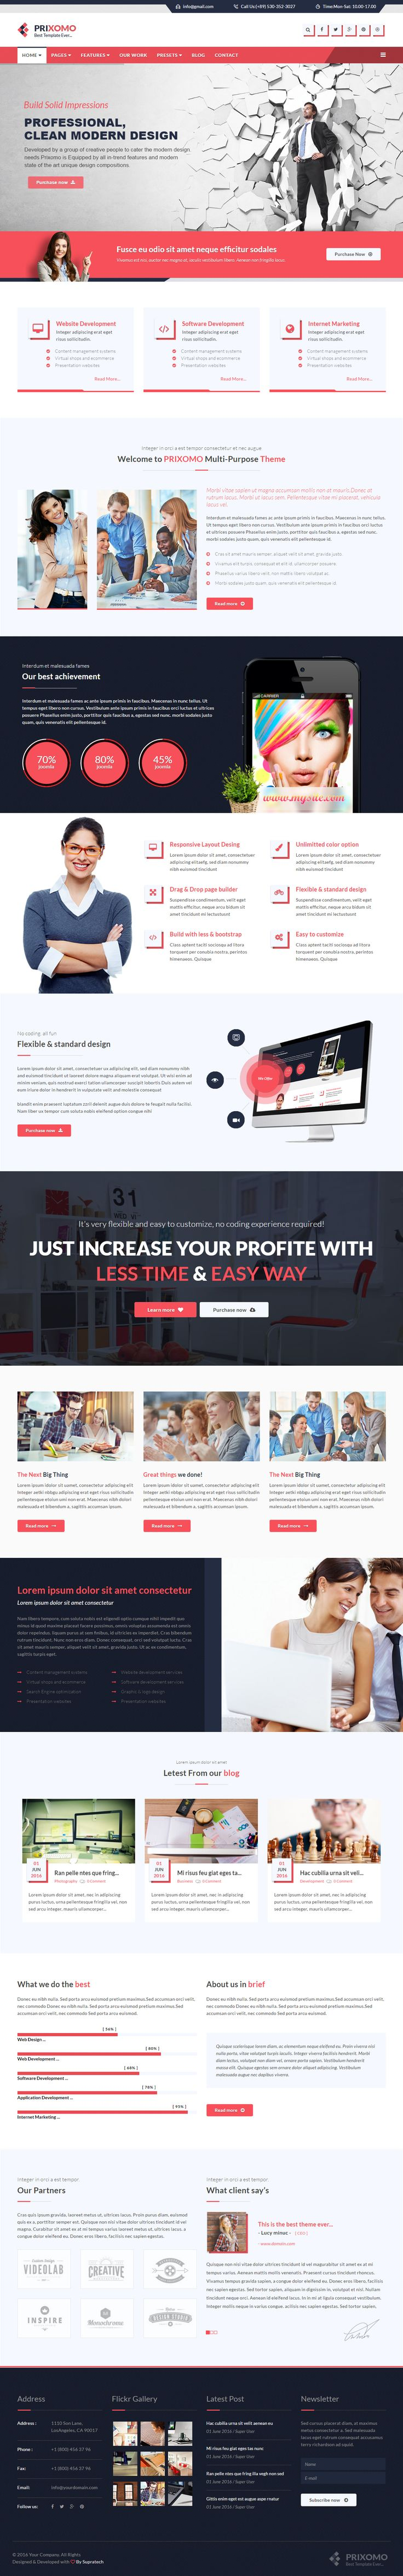 100 best images about joomla responsive themes on pinterest